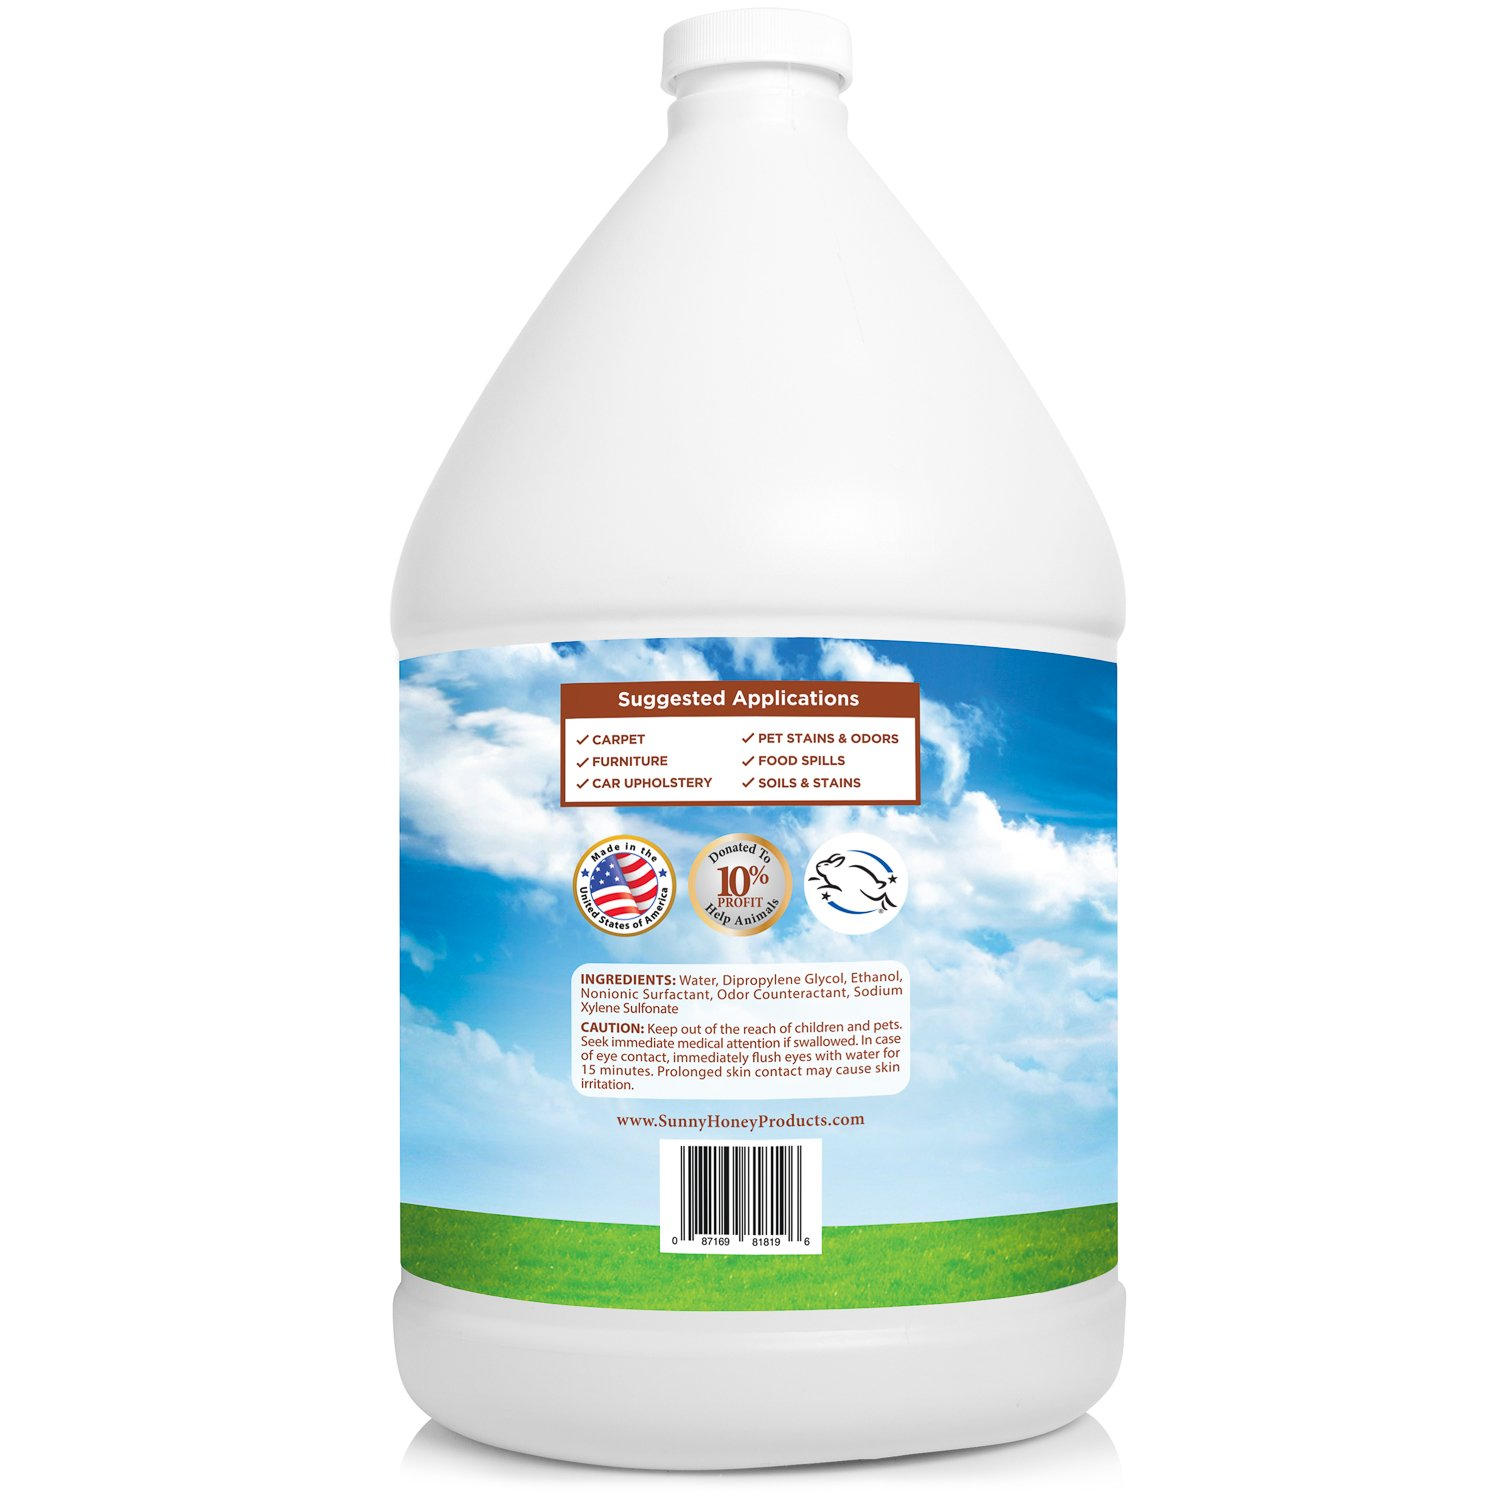 Carpet Miracle - Concentrated Machine Shampoo, Deep Stain and Odor Remover Solution, Deodorizing Formula (1 Gallon) by Sunny & Honey (Image #2)